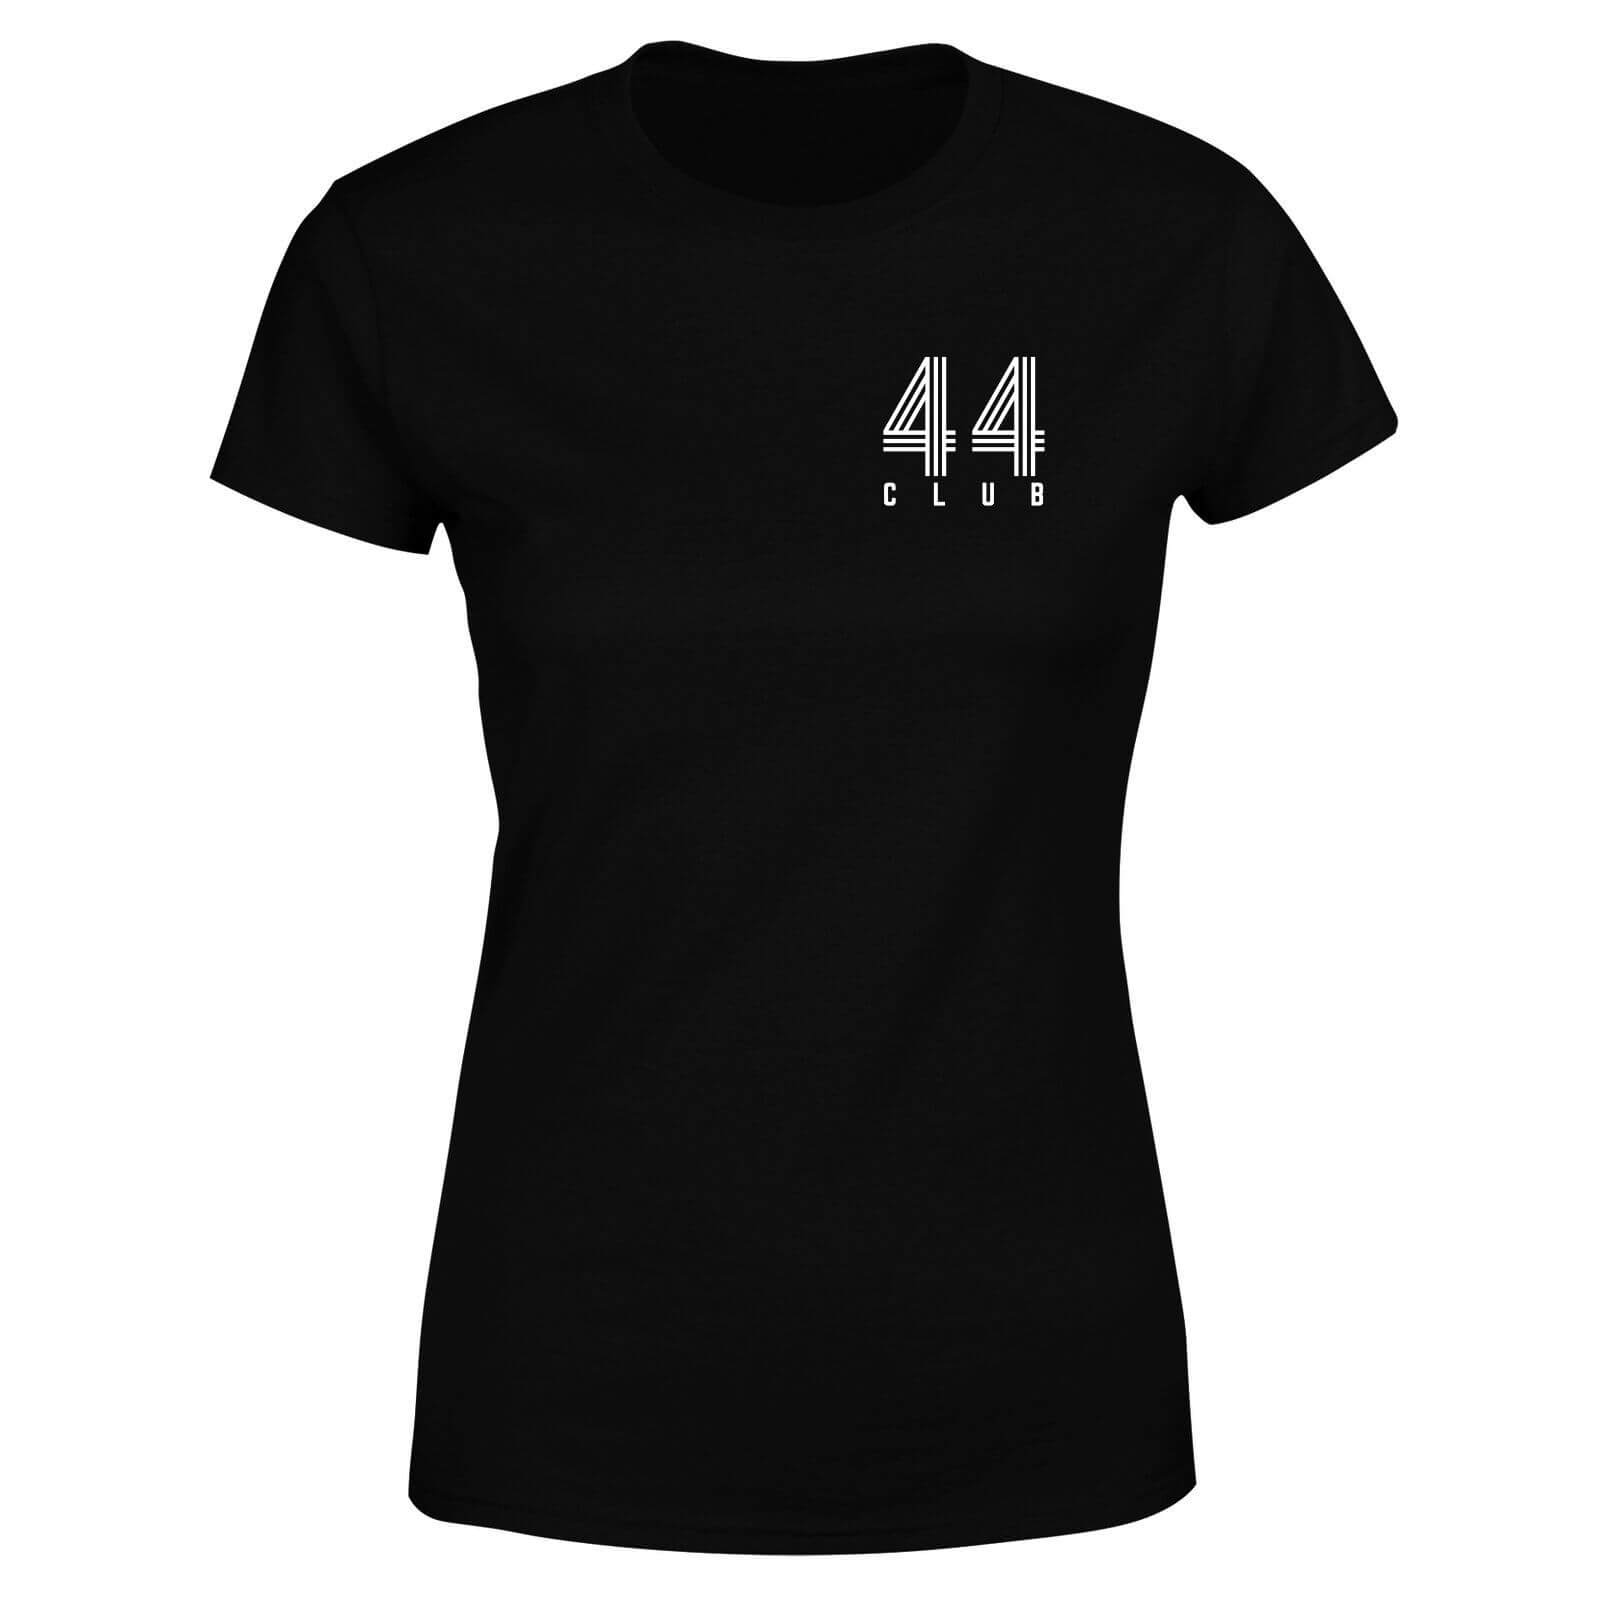 How Ridiculous 44 Club Women